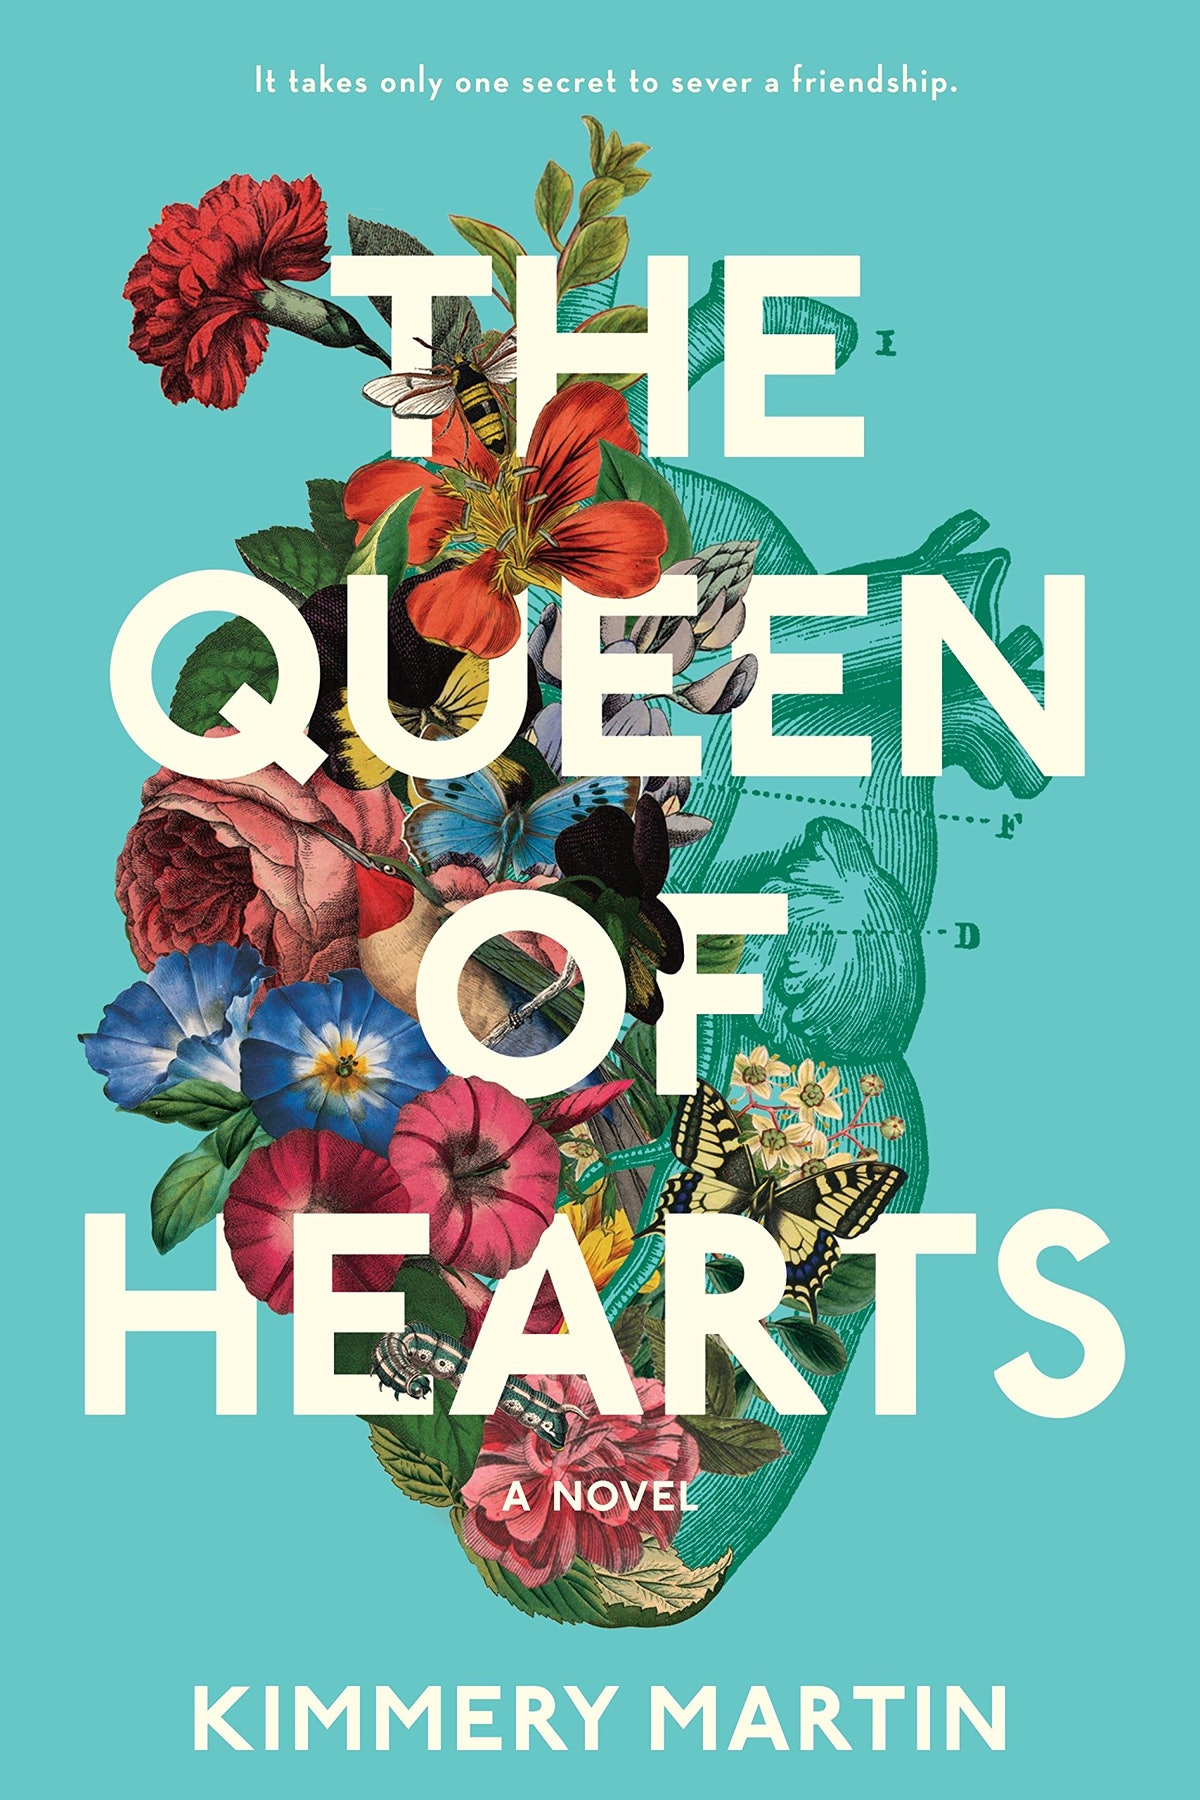 'The Queen Of Hearts' by Kimmery Martin